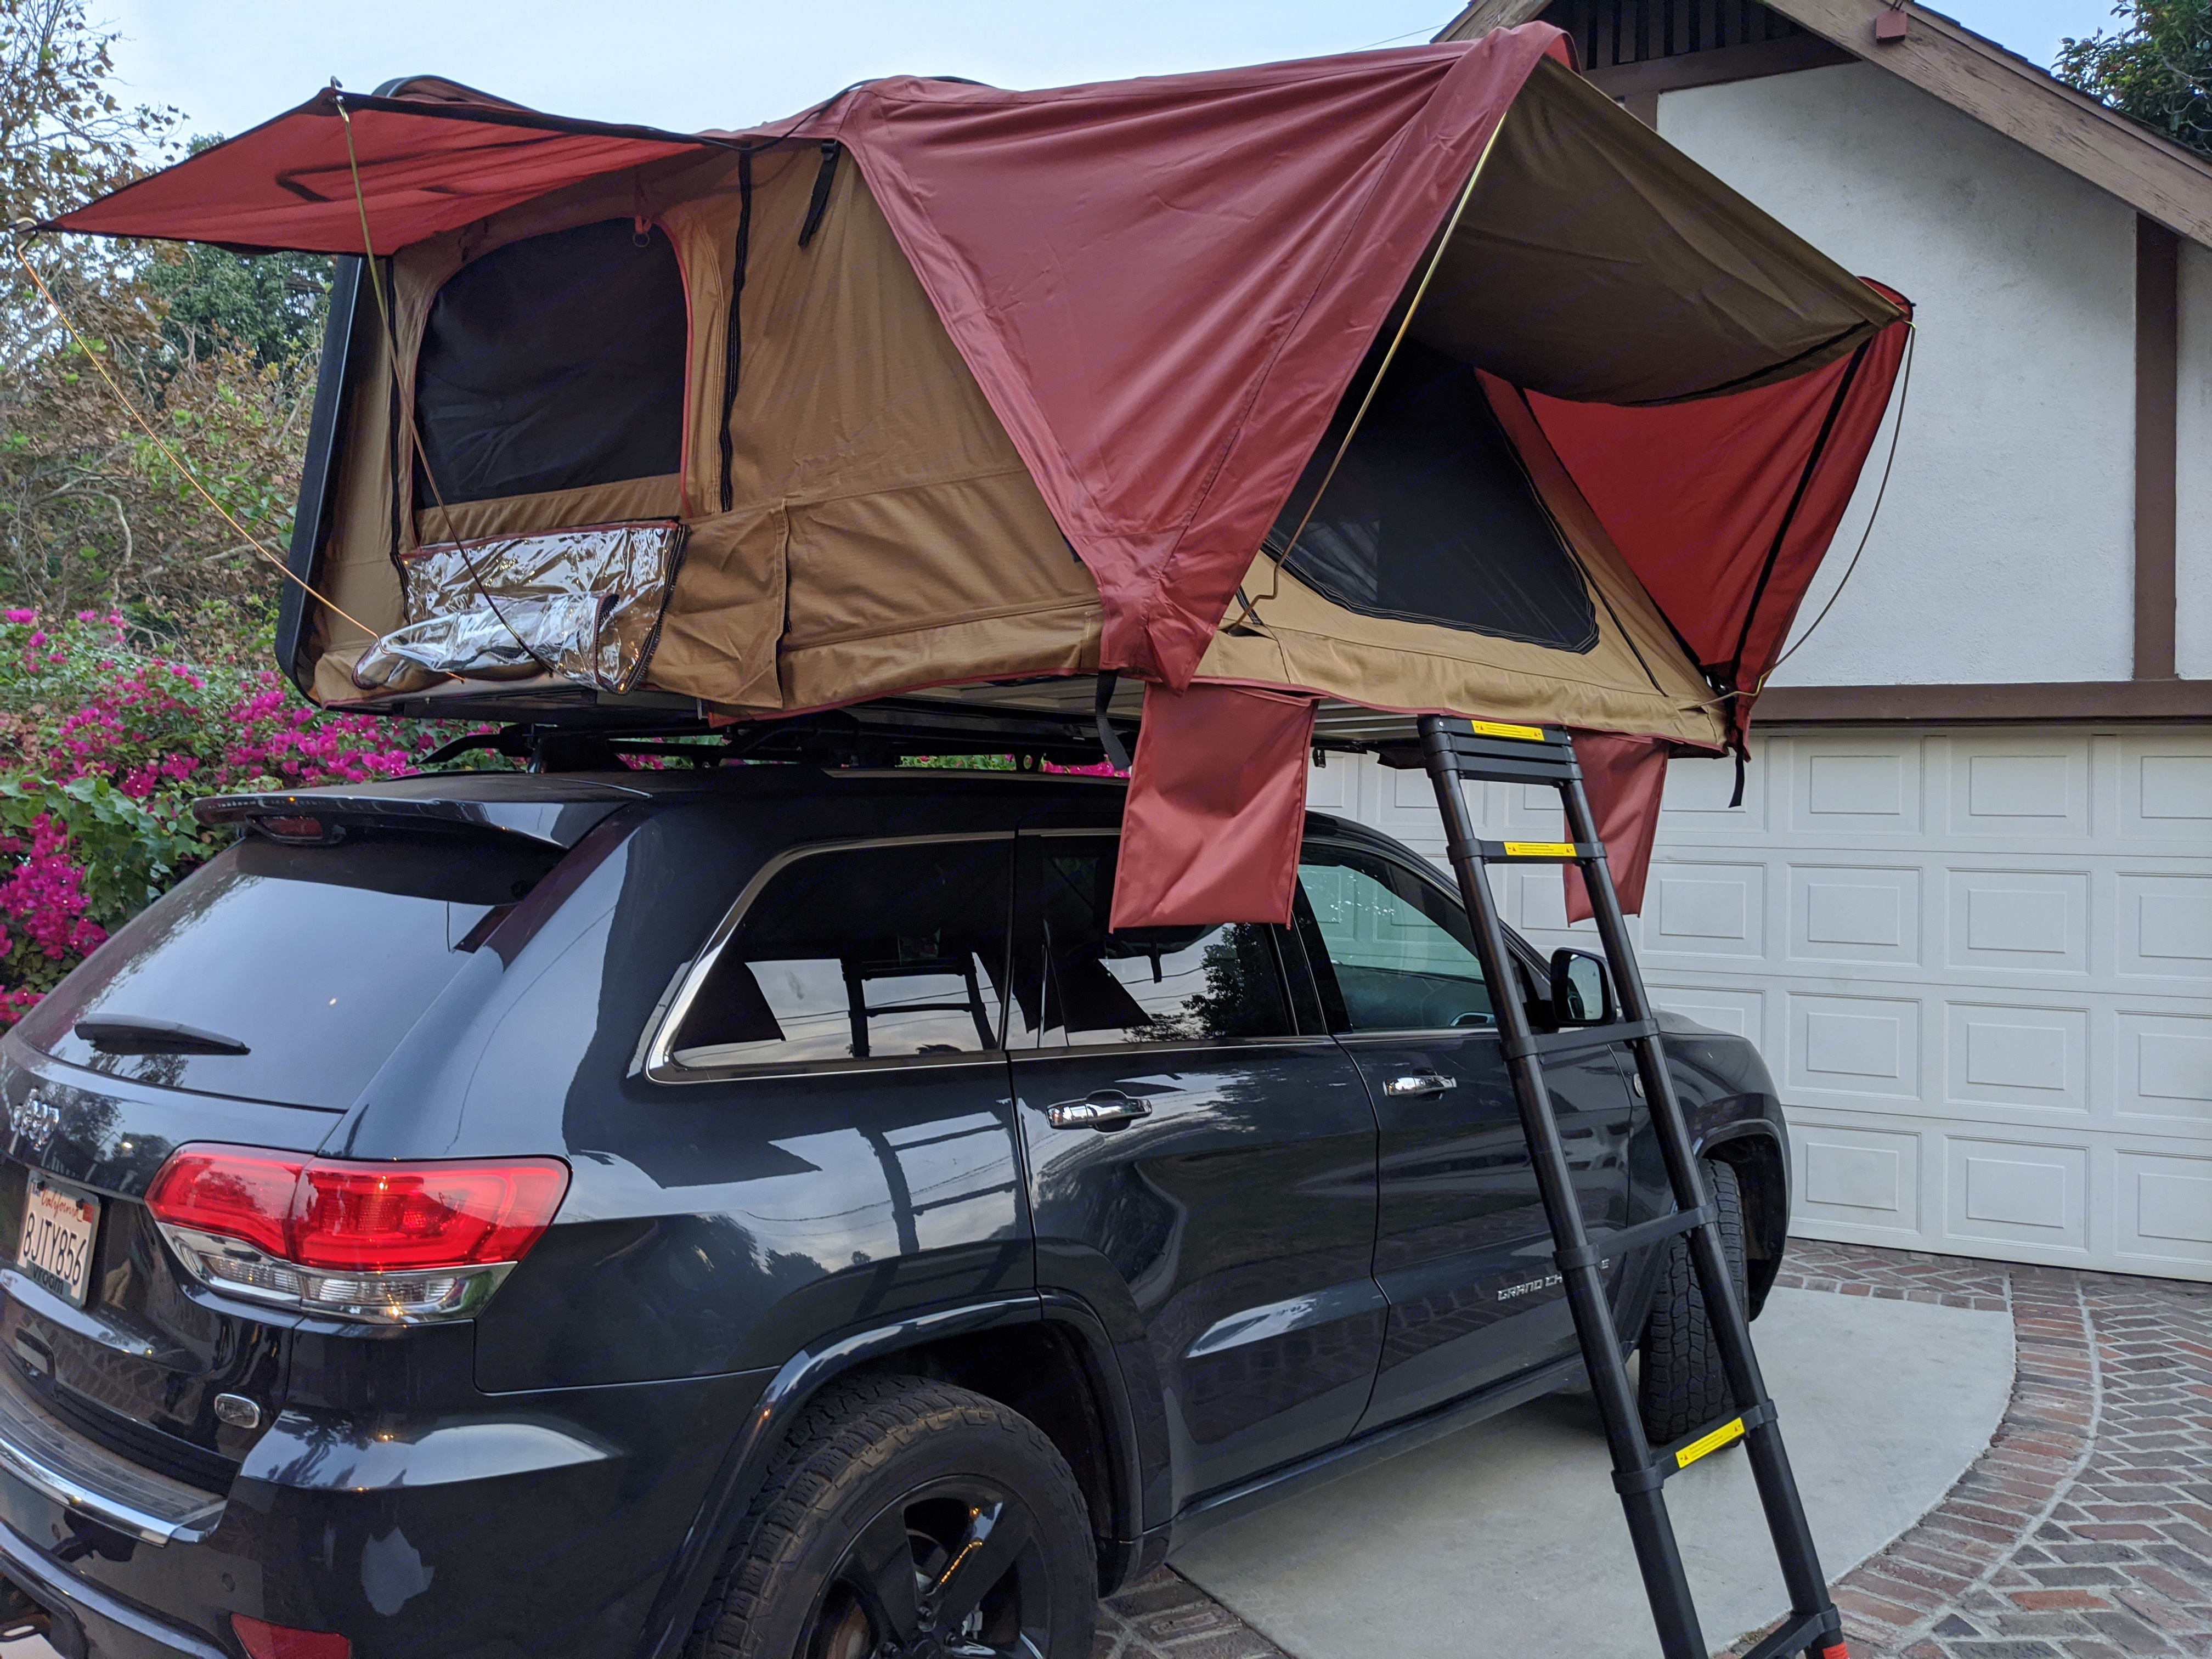 2 adults and 1 child or 1 adult and 2 children can sleep comfortably.. Jeep Grand Cherokee 2015